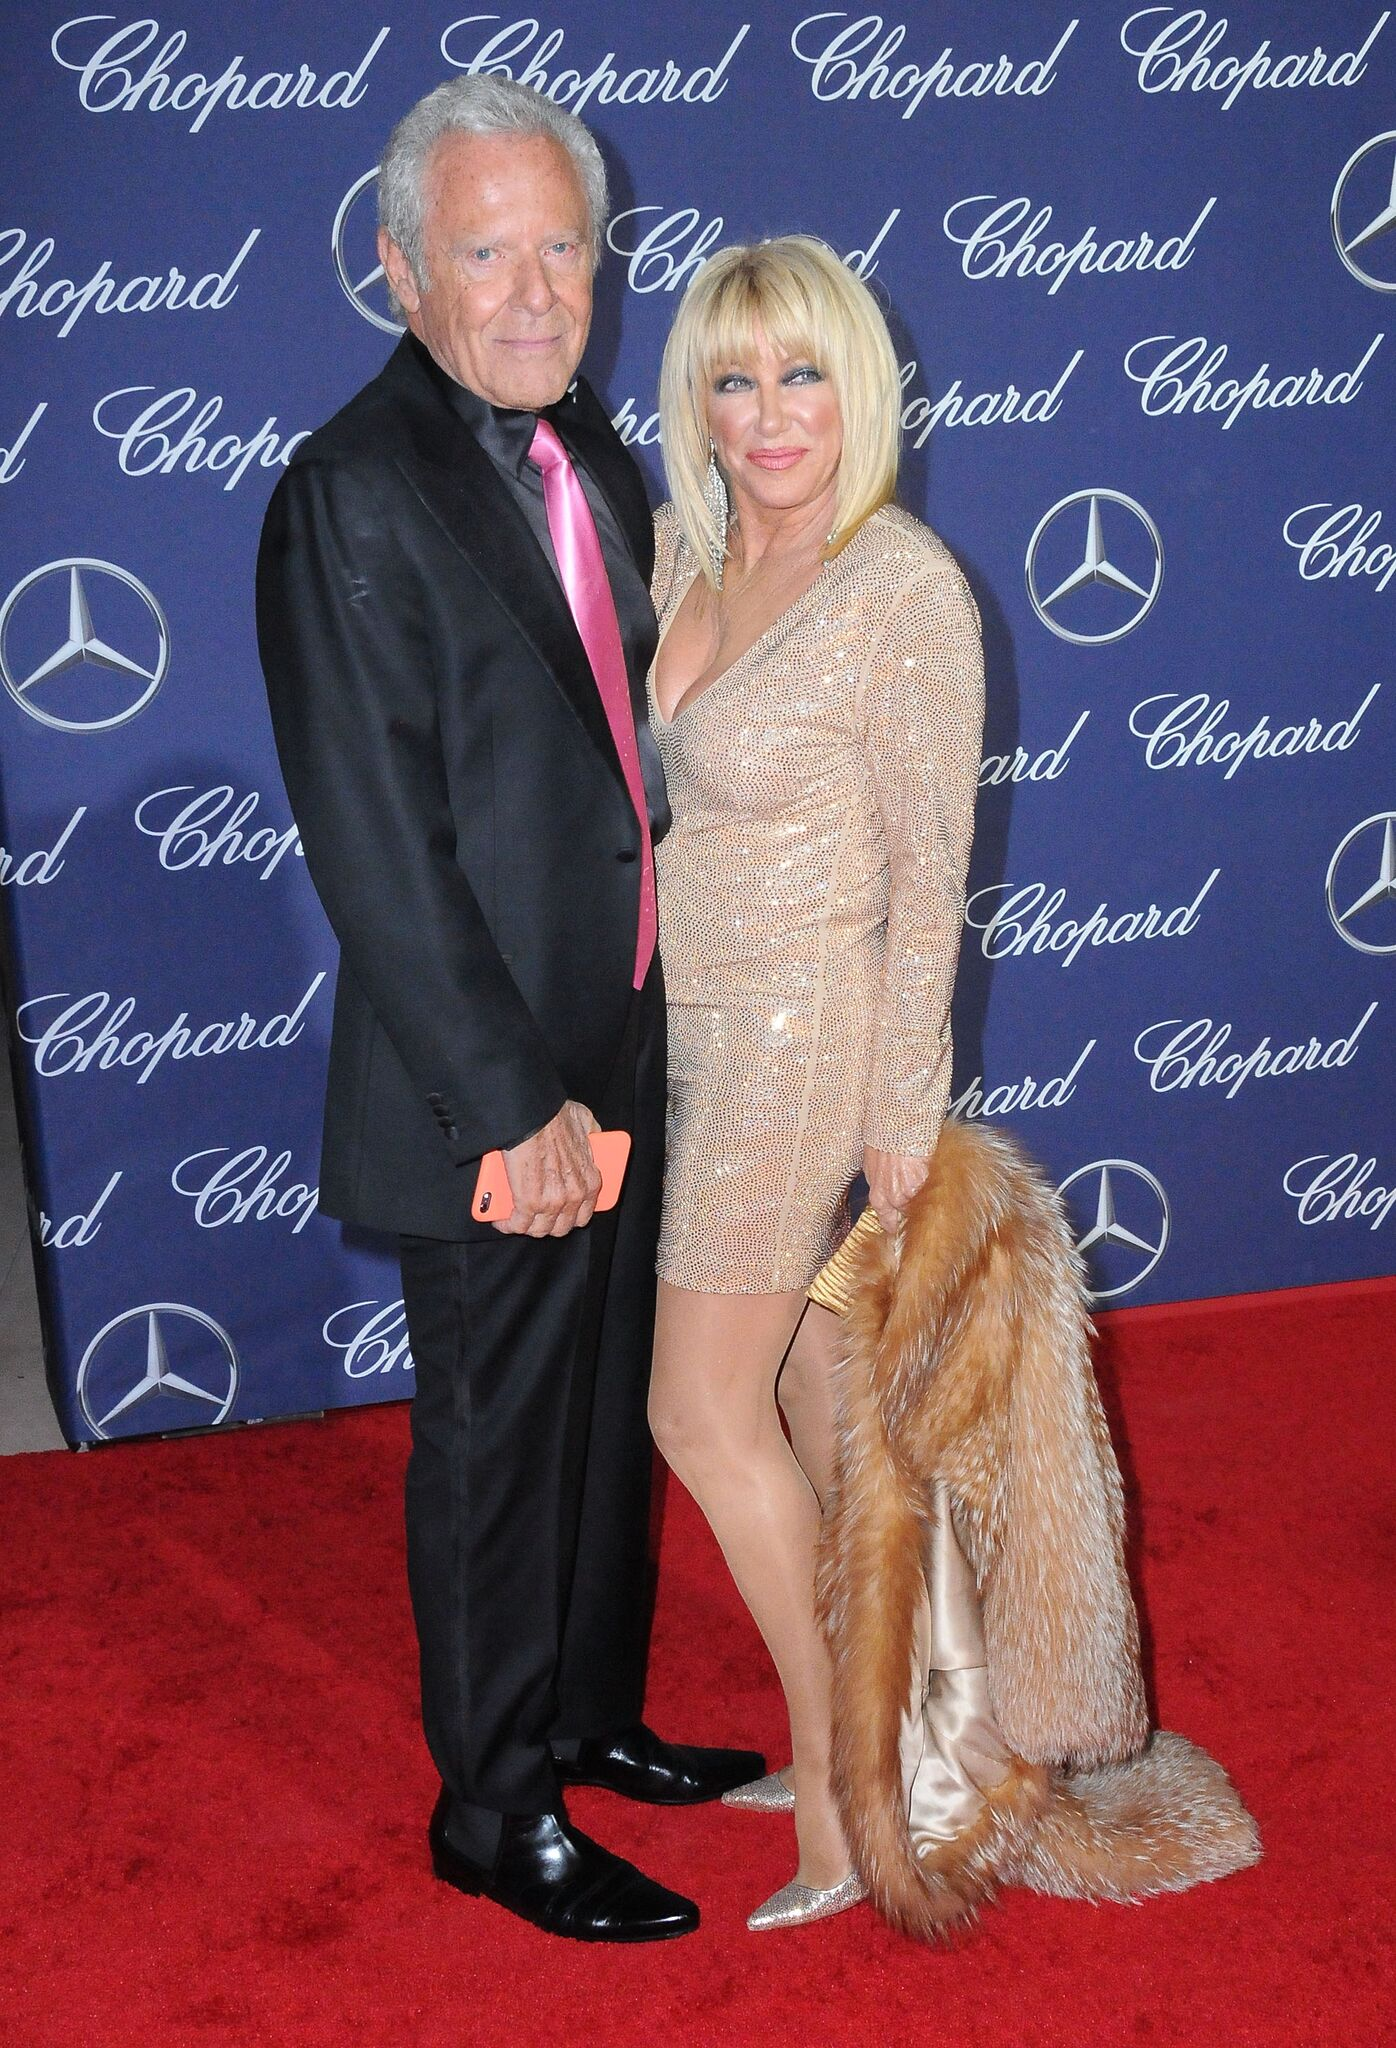 Suzanne Somers and husband Alan Hamel at the 28th Annual Palm Springs International Film Festival Film Awards Gala | Getty Images